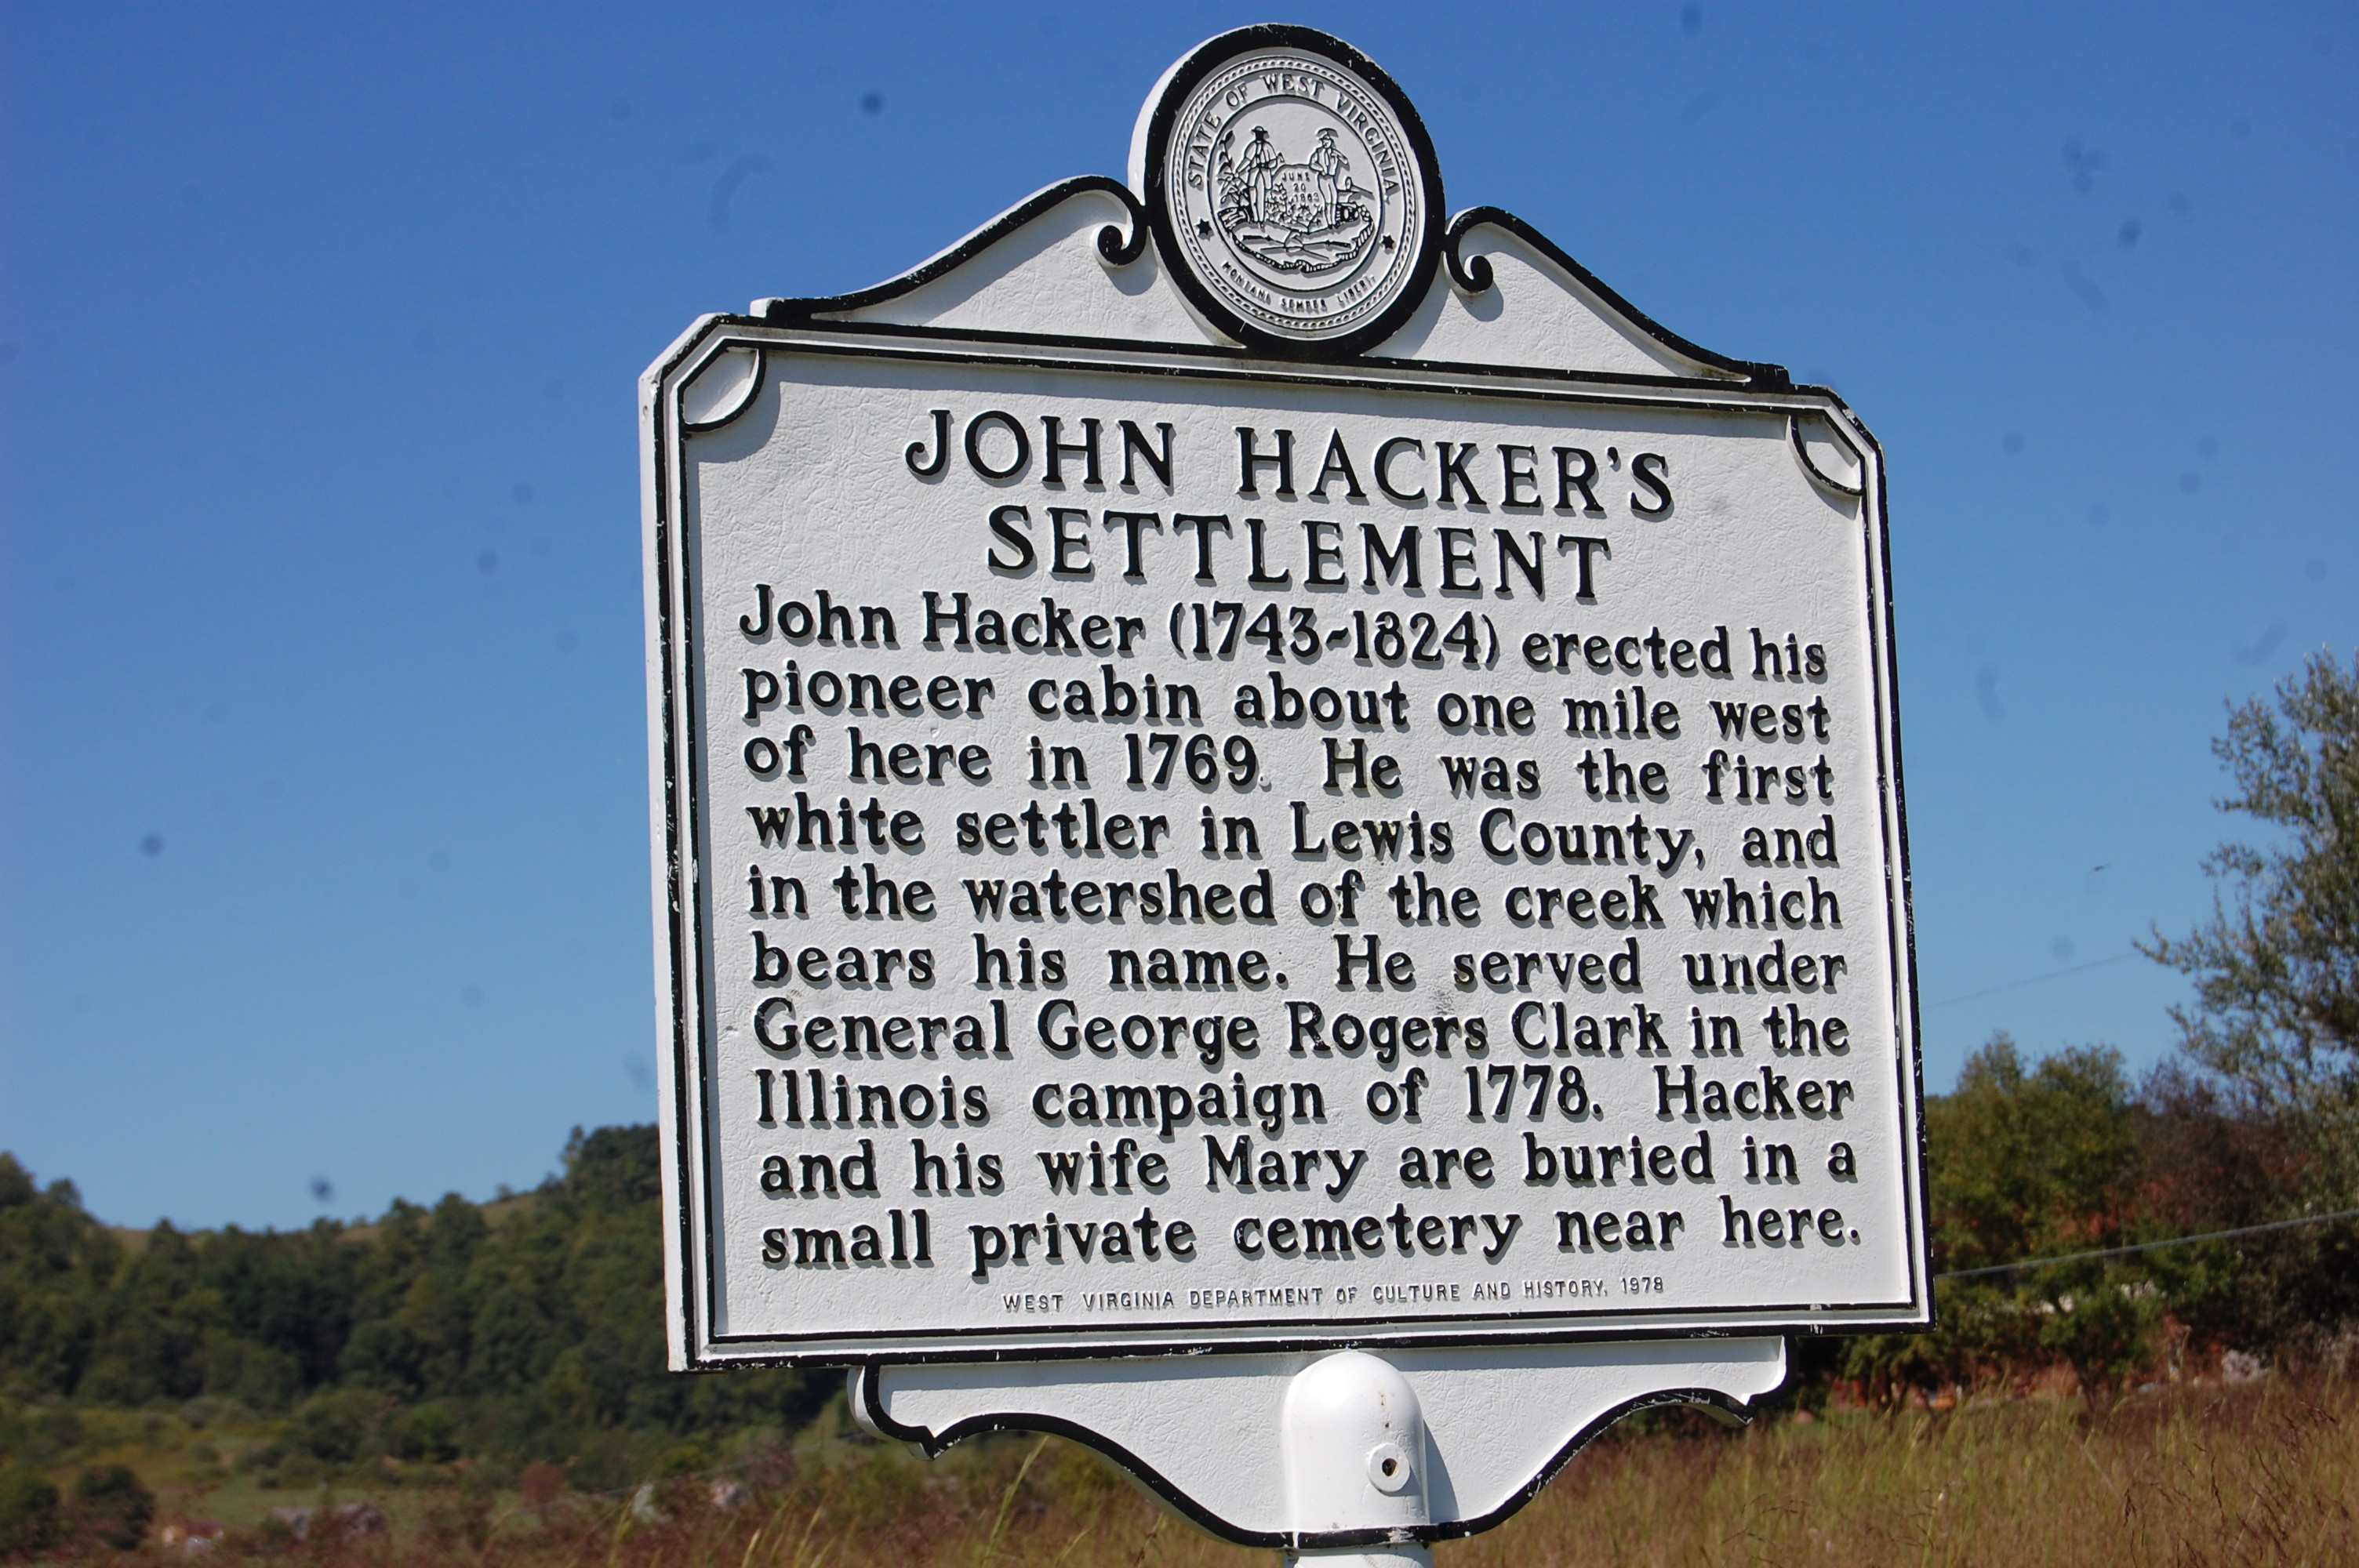 West Virginia Historical Road Marker for the John Hacker Settlement.